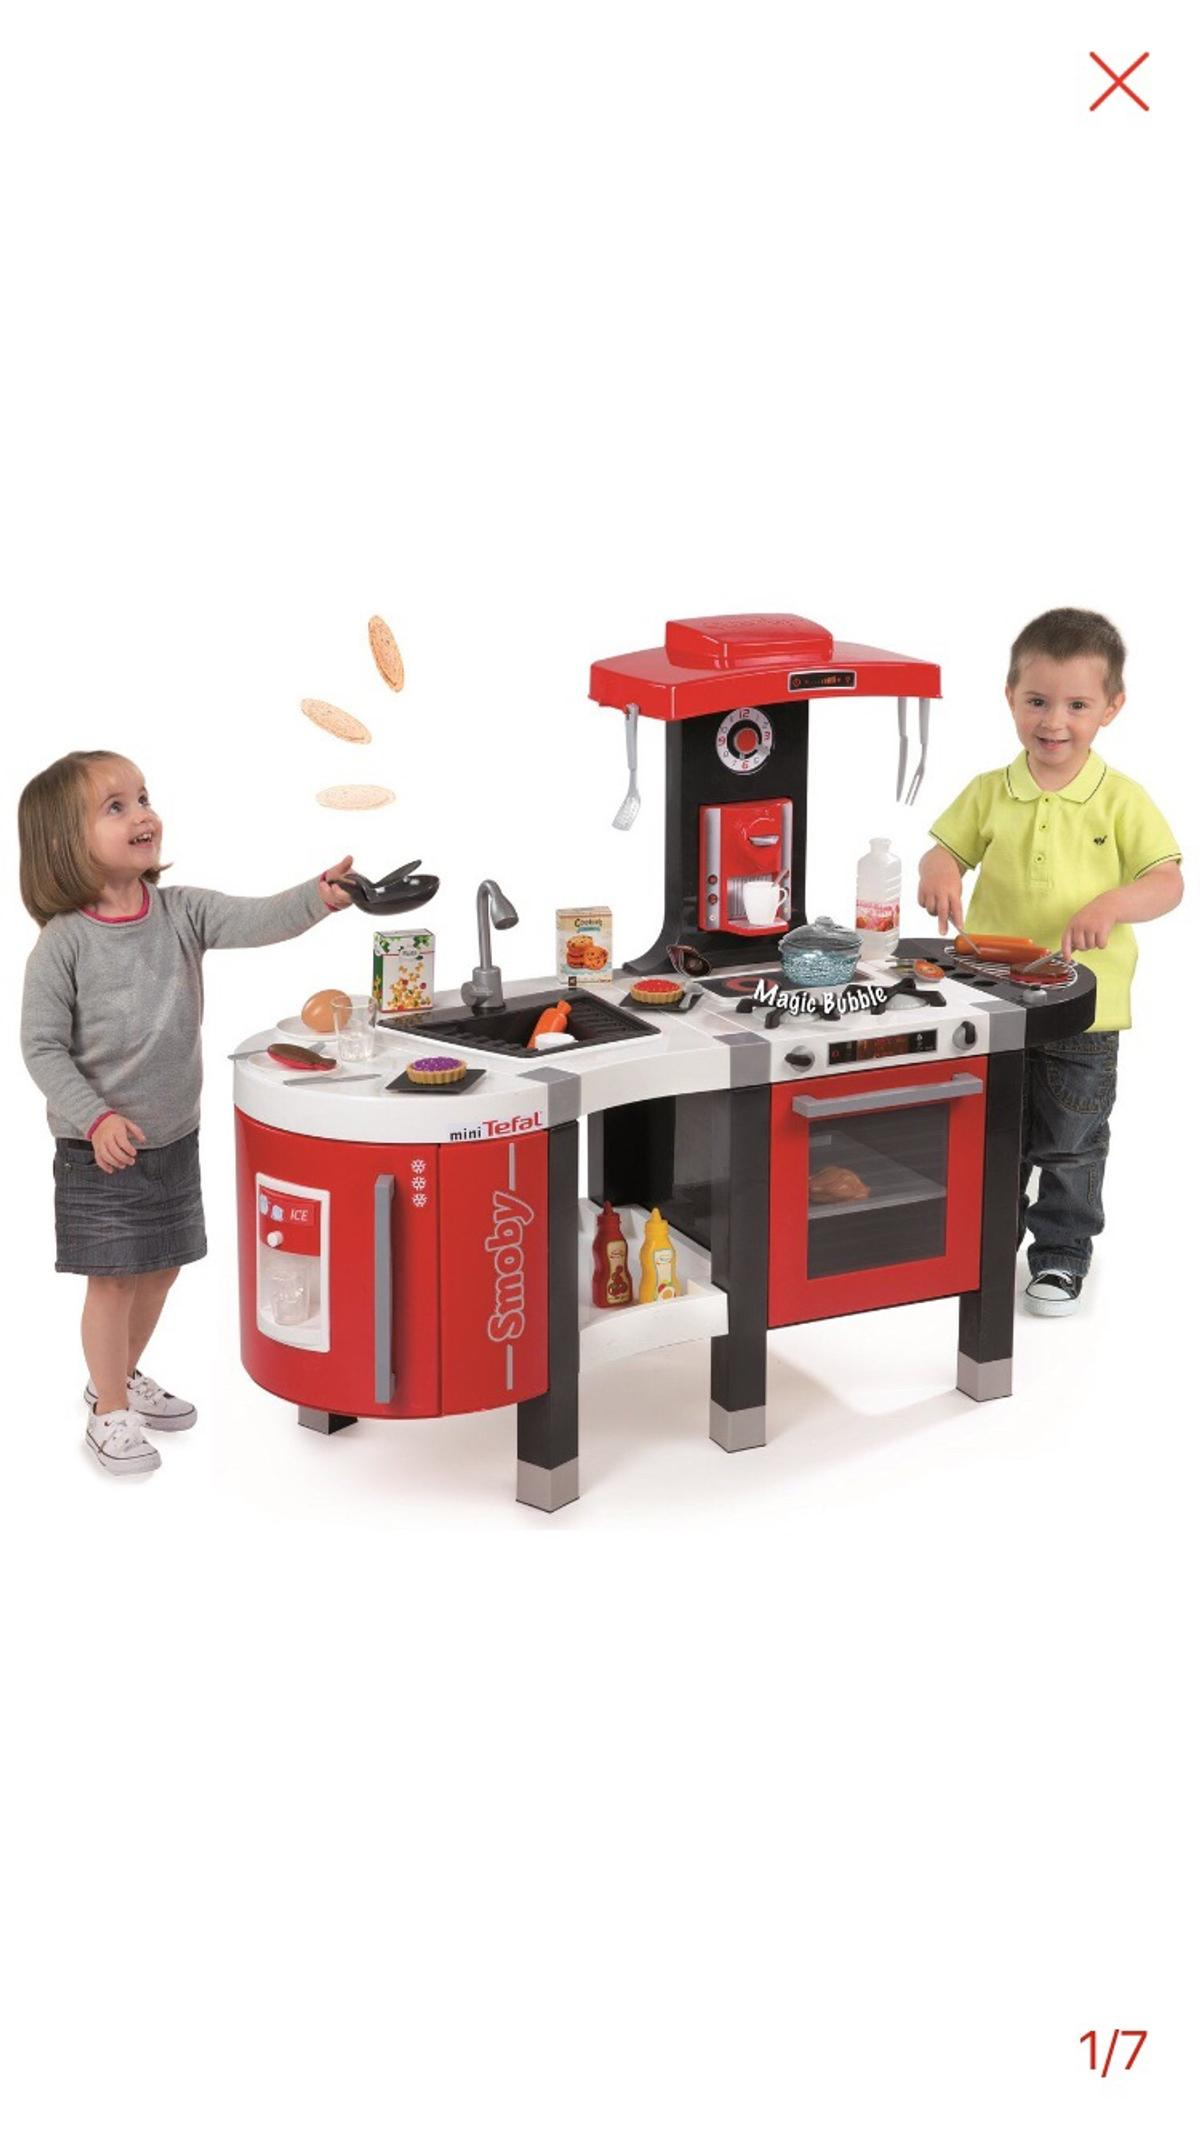 Smoby Tefal French Touch Bubble Küche Mit Wasserfunktion Smoby Tefal French Touch Children Kitchen In Ba2 Bath For £49.00 For Sale | Shpock